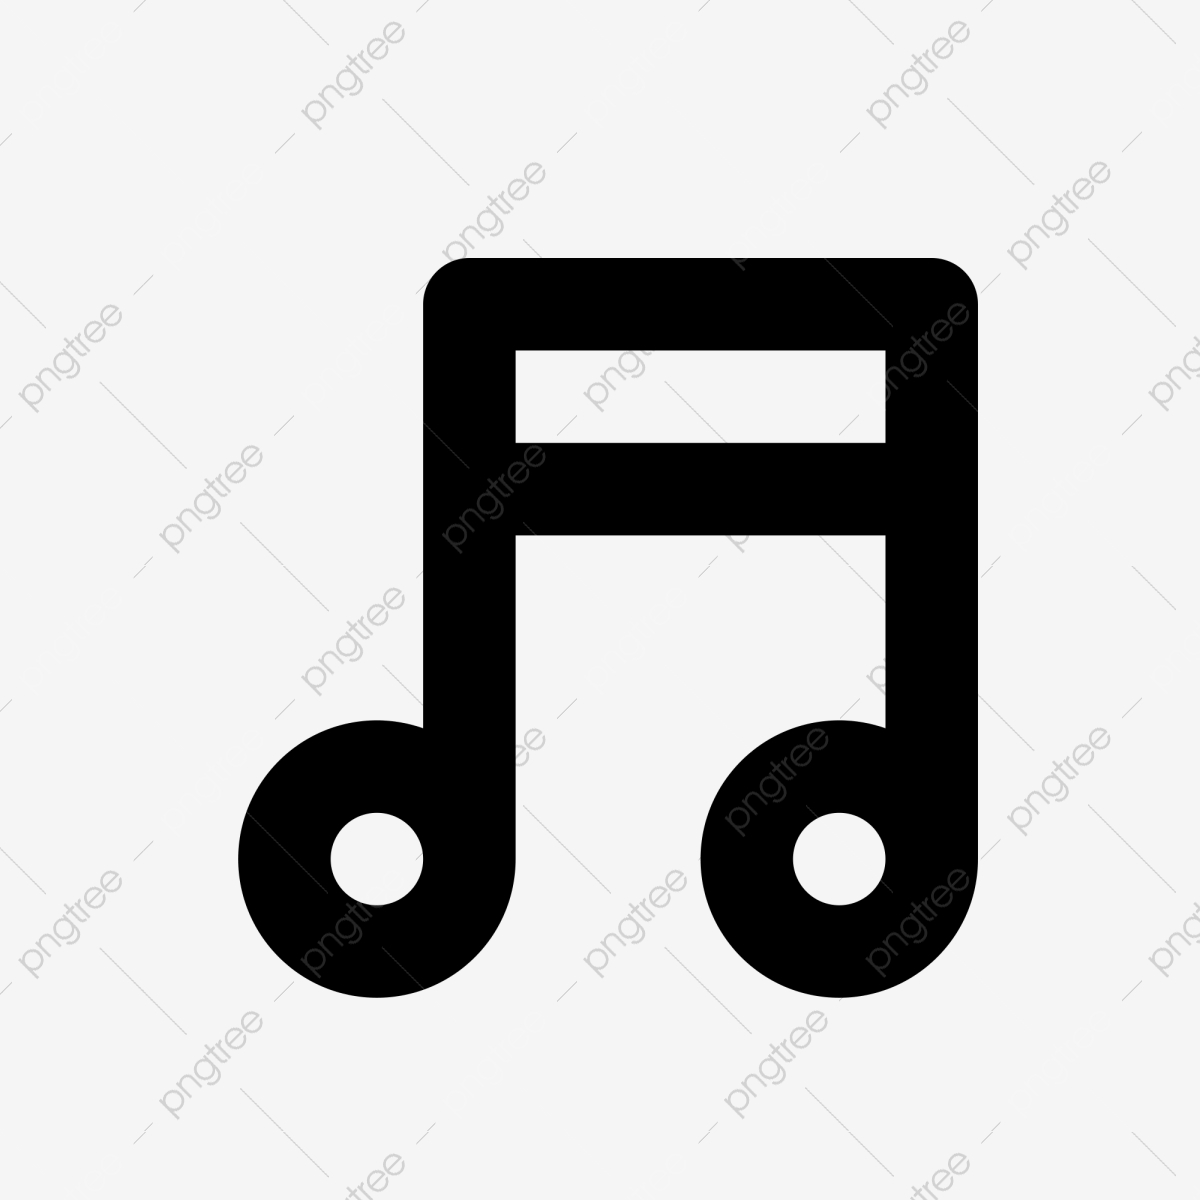 music icon png vector psd and clipart with transparent background for free download pngtree https pngtree com freepng music icon 4694506 html